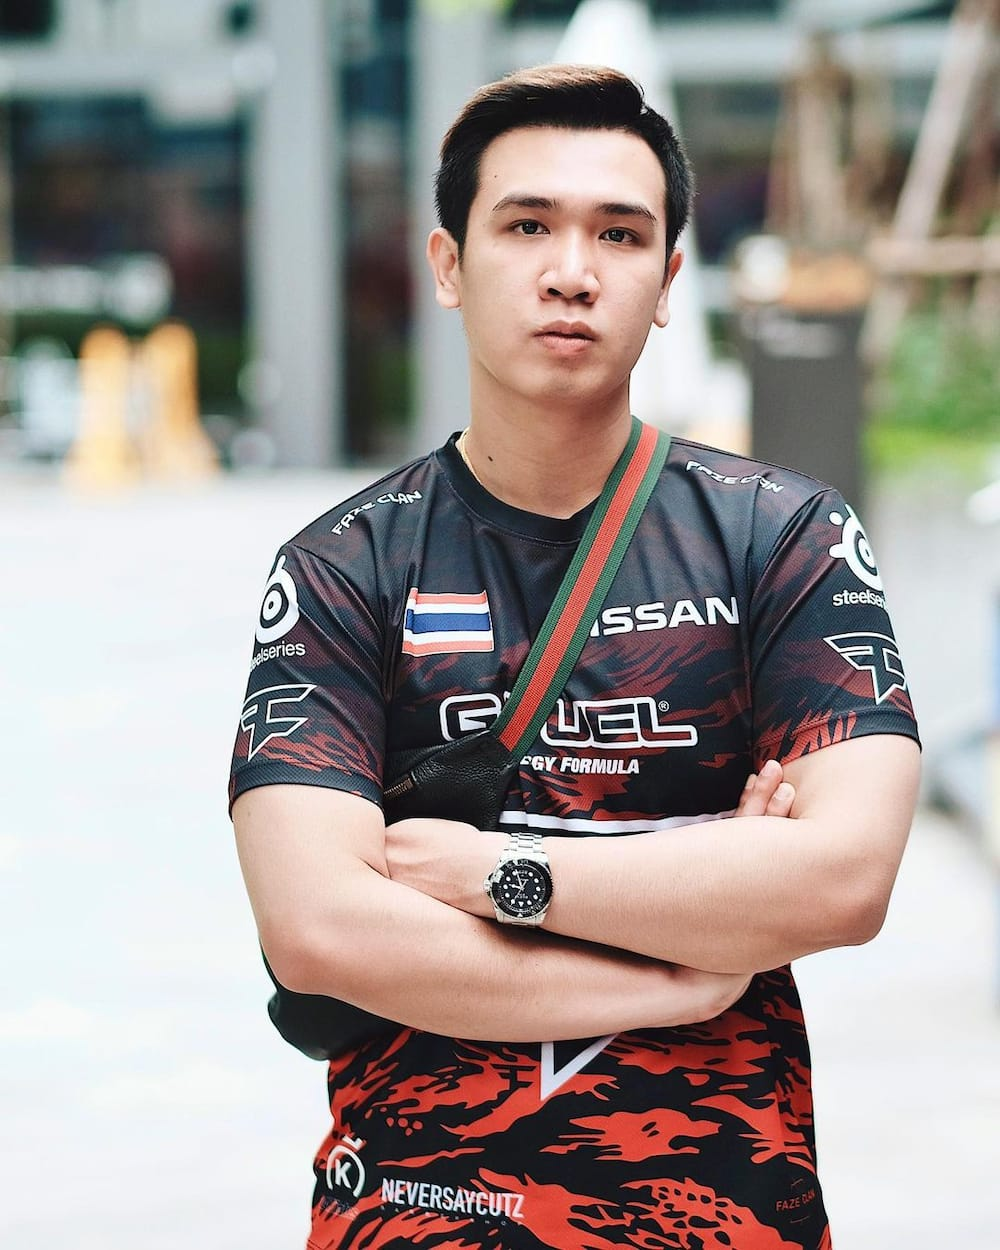 Best PUBG player in the world